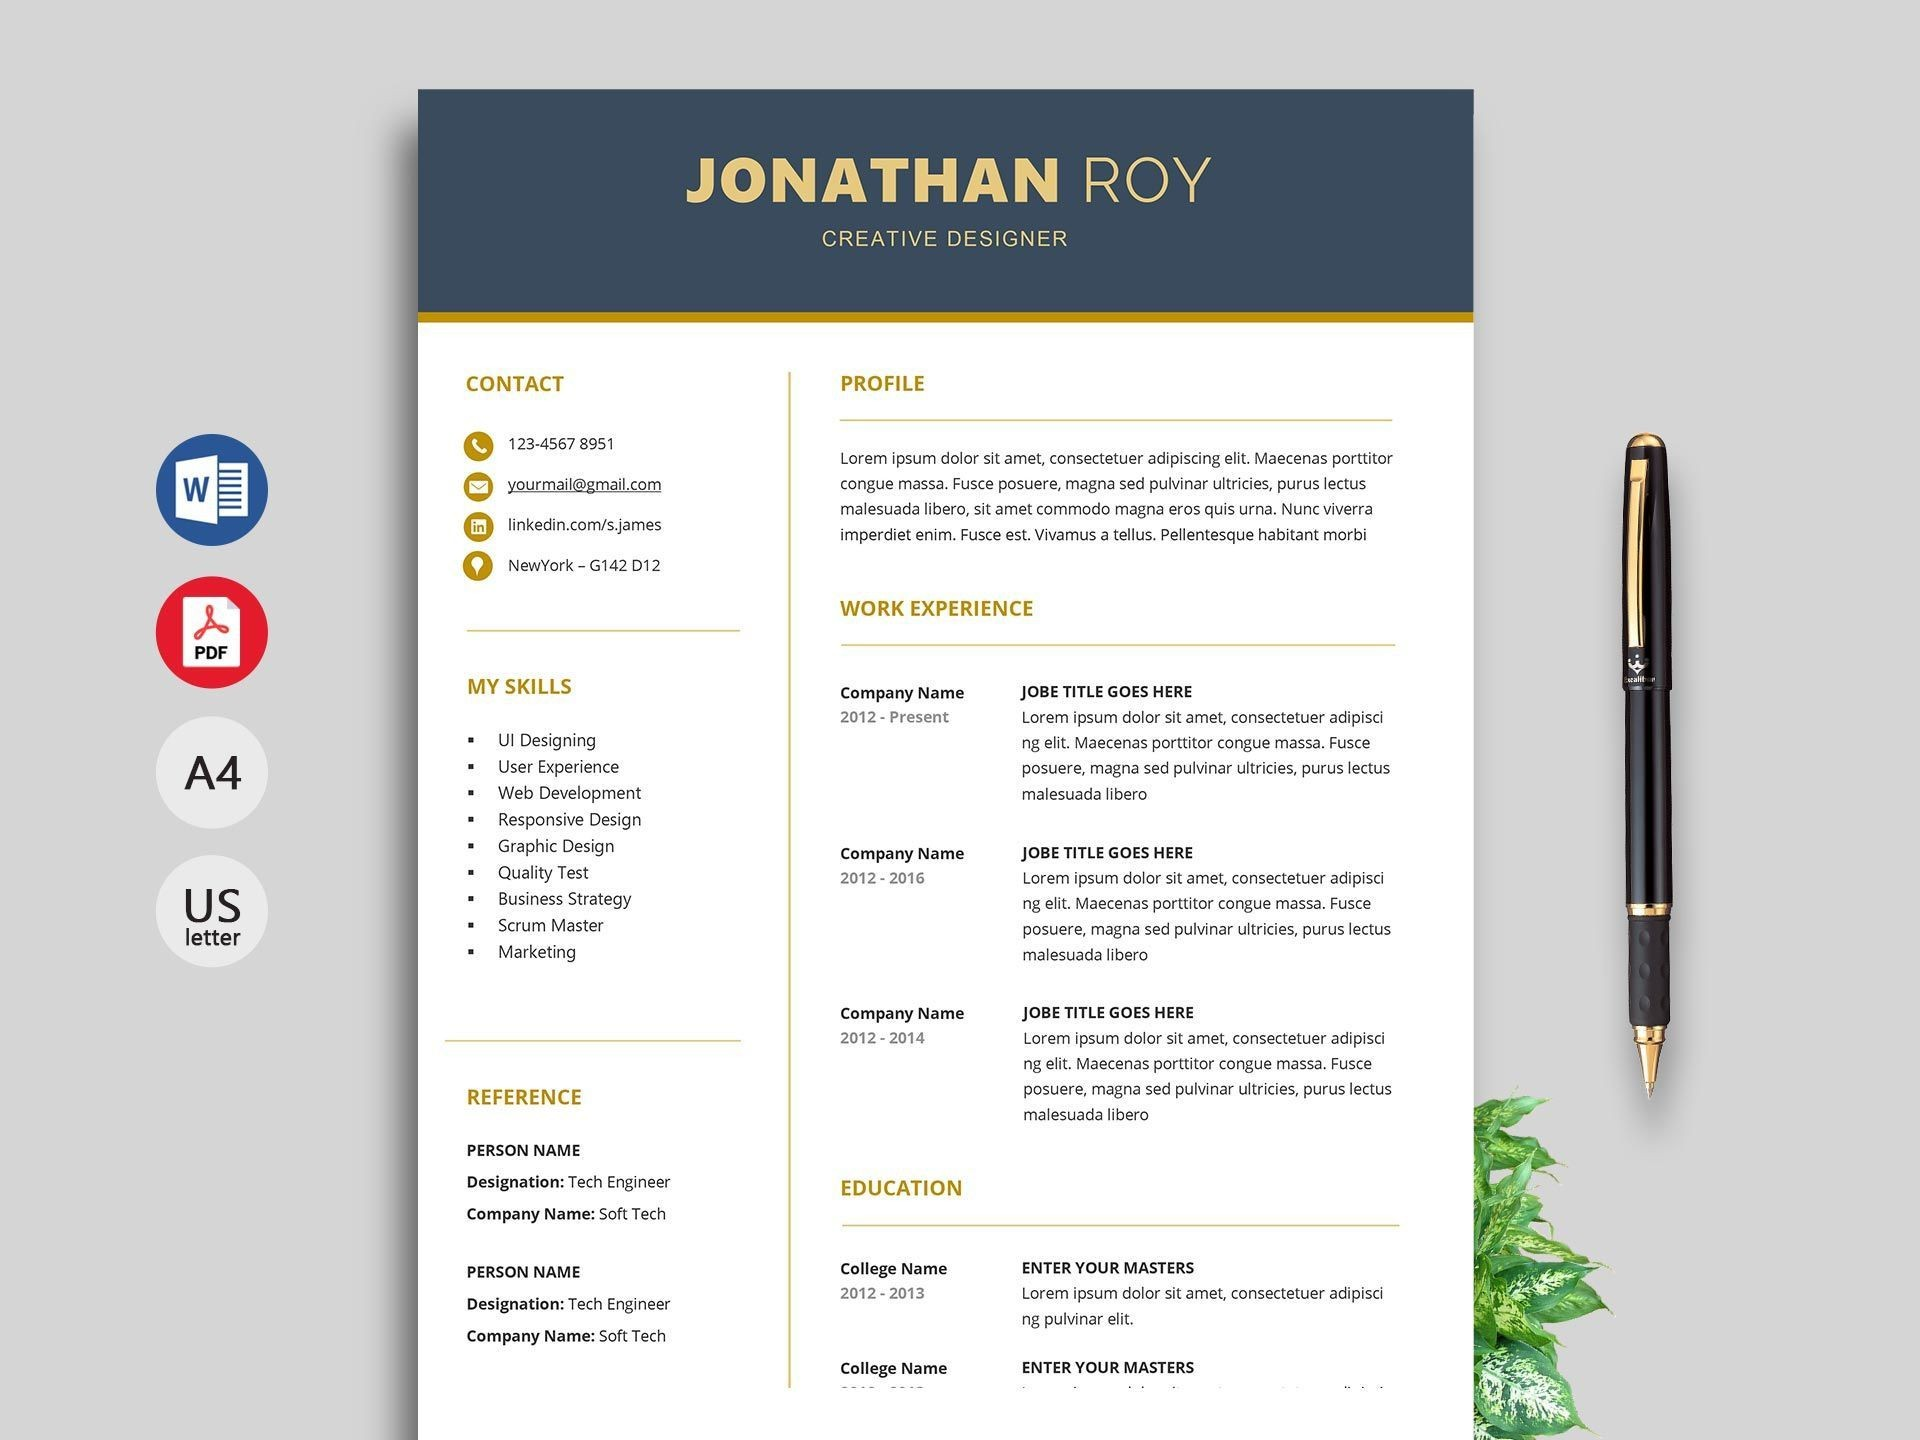 003 Unusual Professional Resume Template Free Download Word Example  Cv 2020 Format With Photo1920